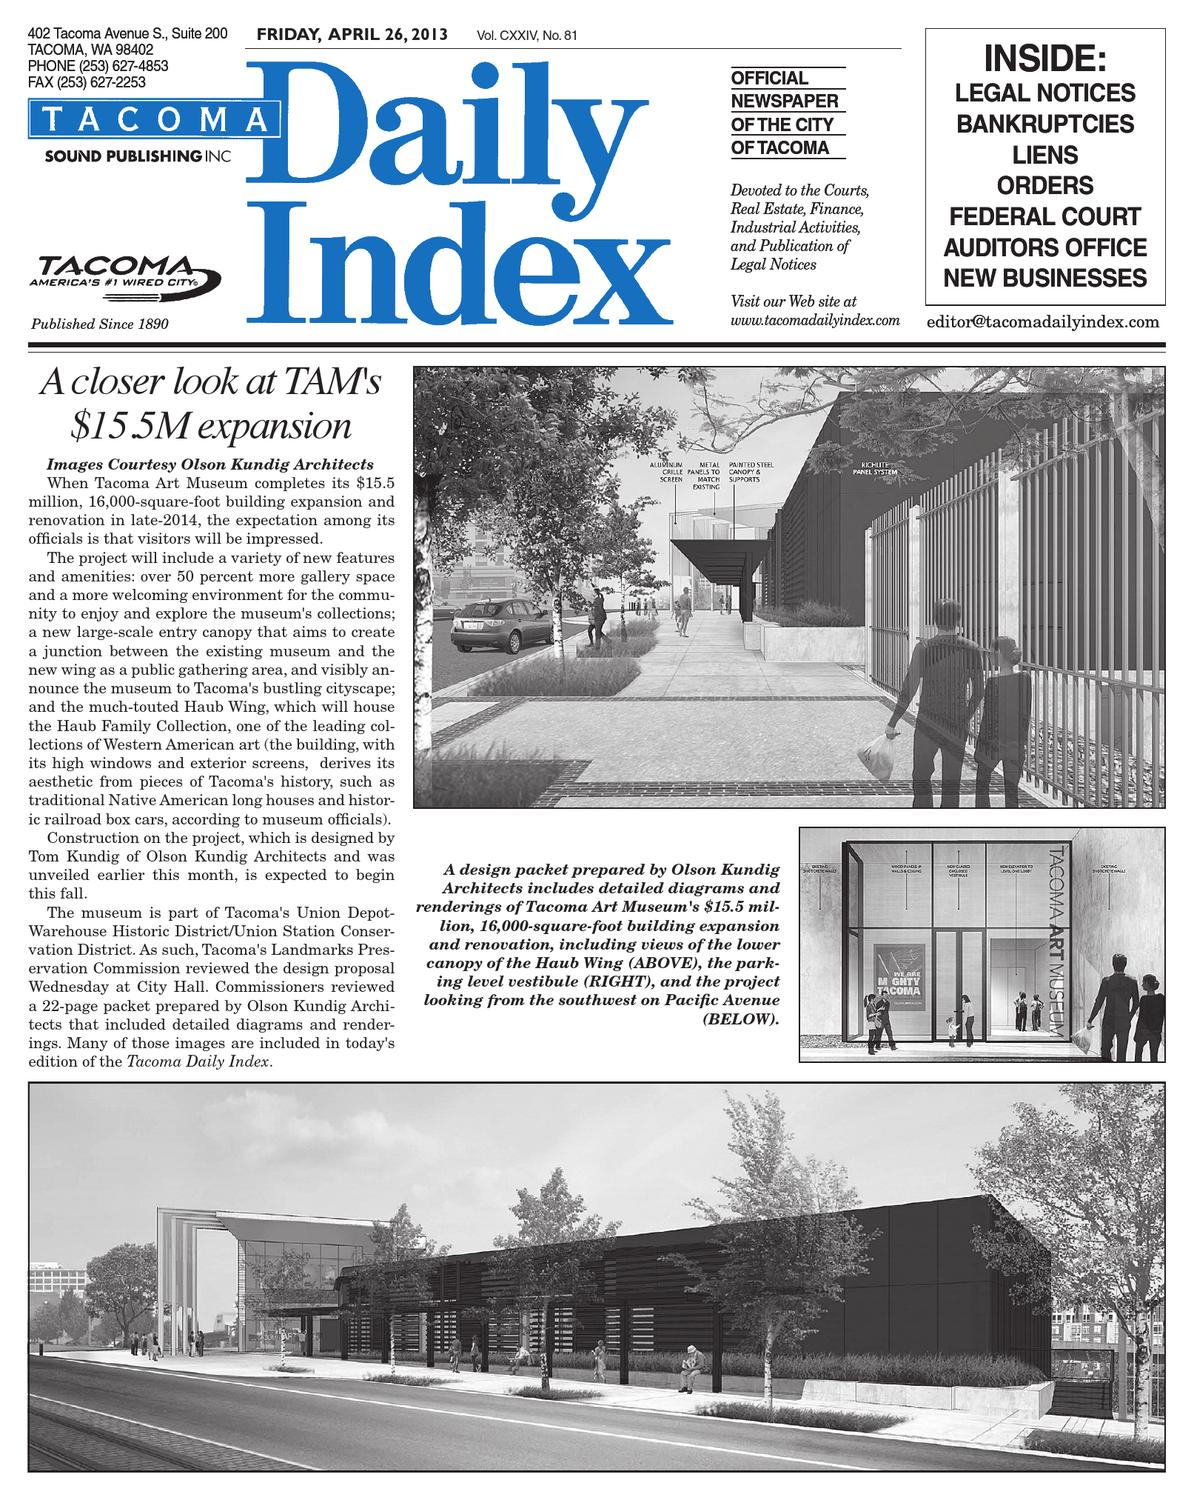 Andrea Garciaxxx tacoma daily index, april 26, 2013sound publishing - issuu